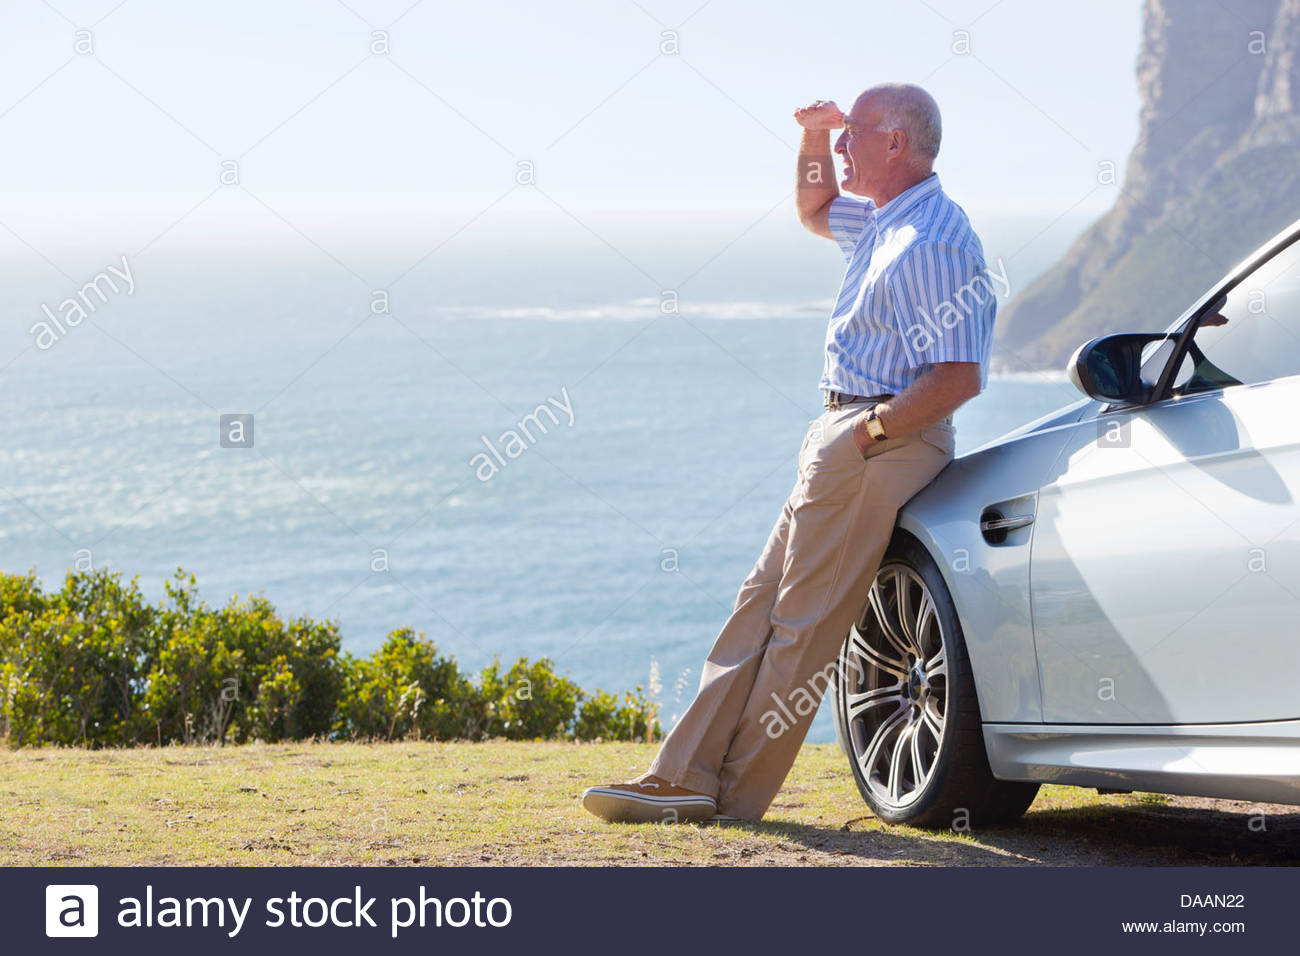 Man leaning against car and shielding eyes to look at ocean view - Stock Image